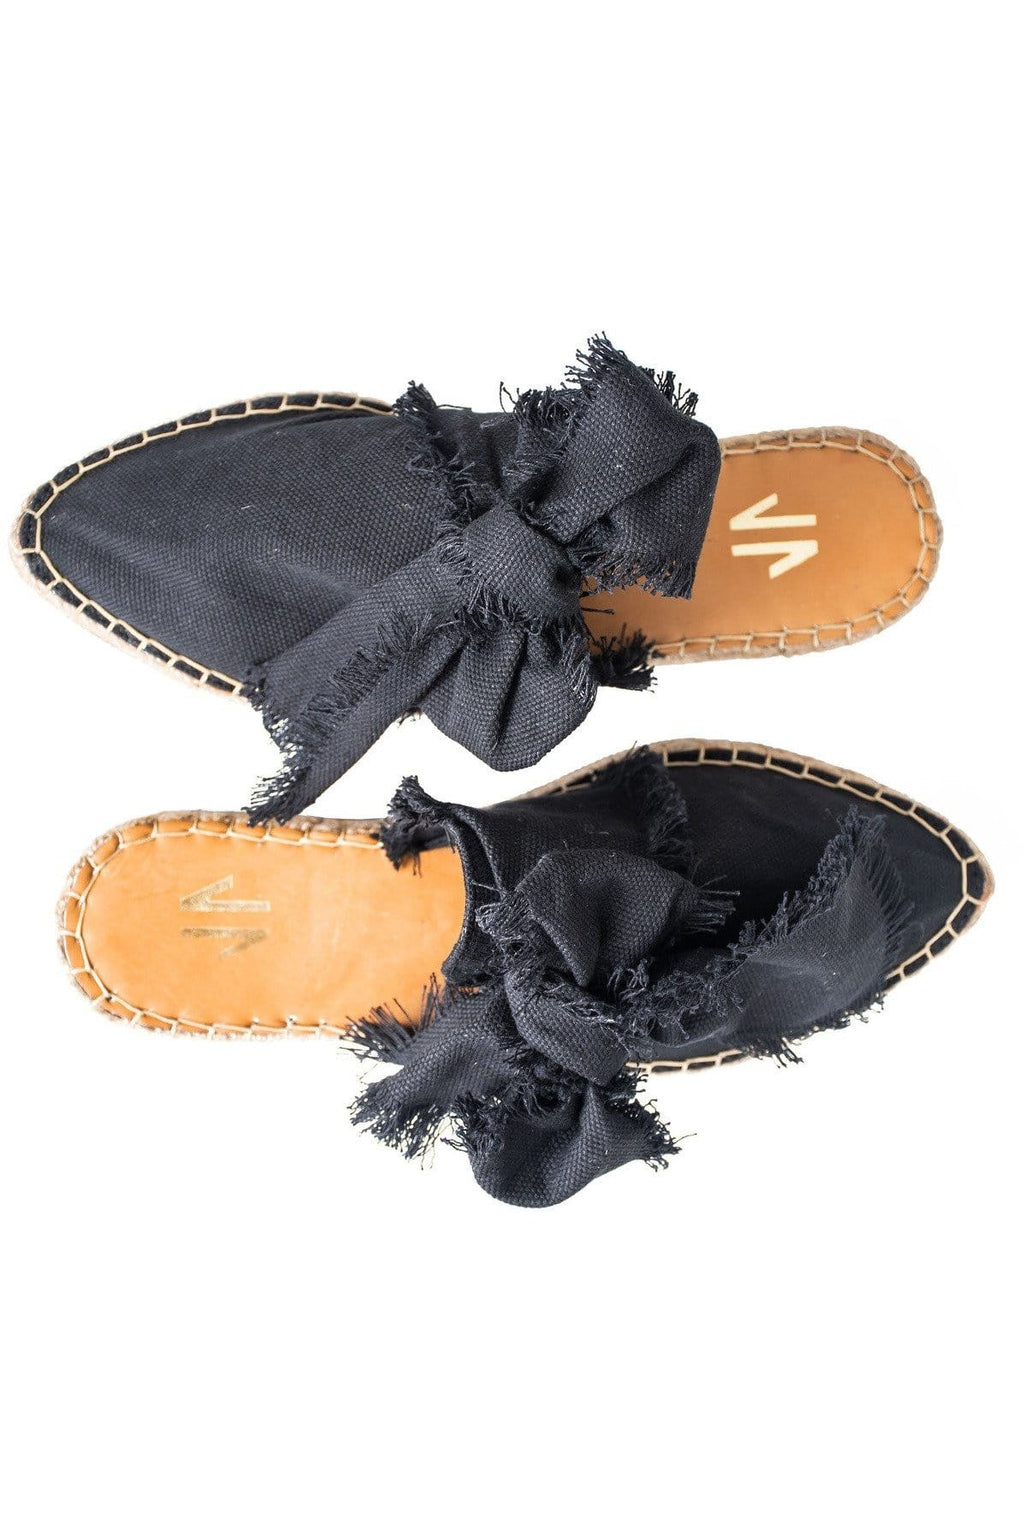 Columbian Leather and Textile Mules in Black - Himelhoch's